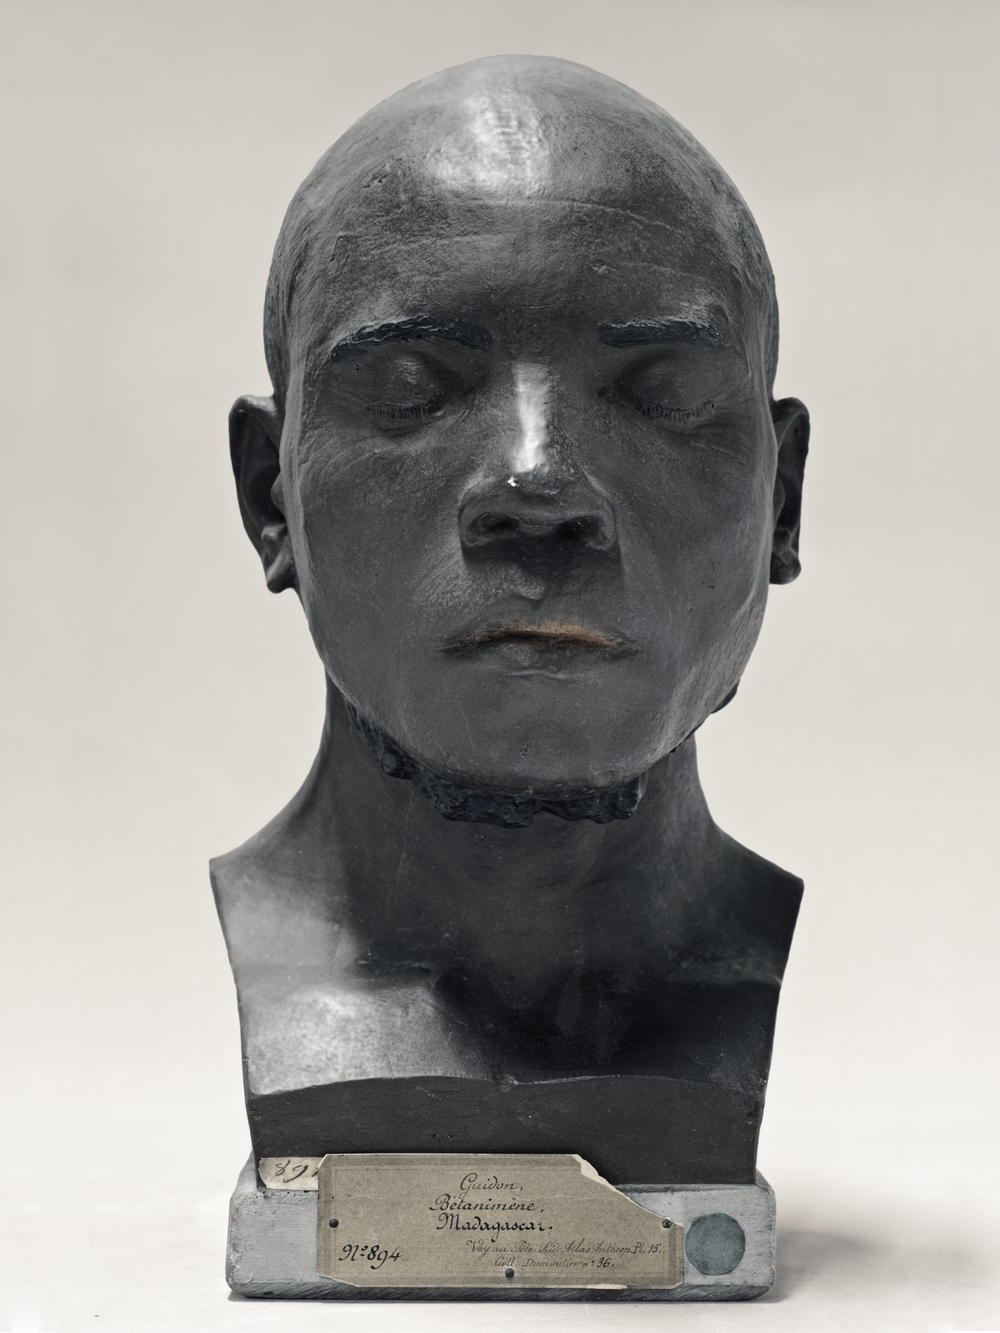 Portrait of a life cast of Guidon (painted), Madagasgar